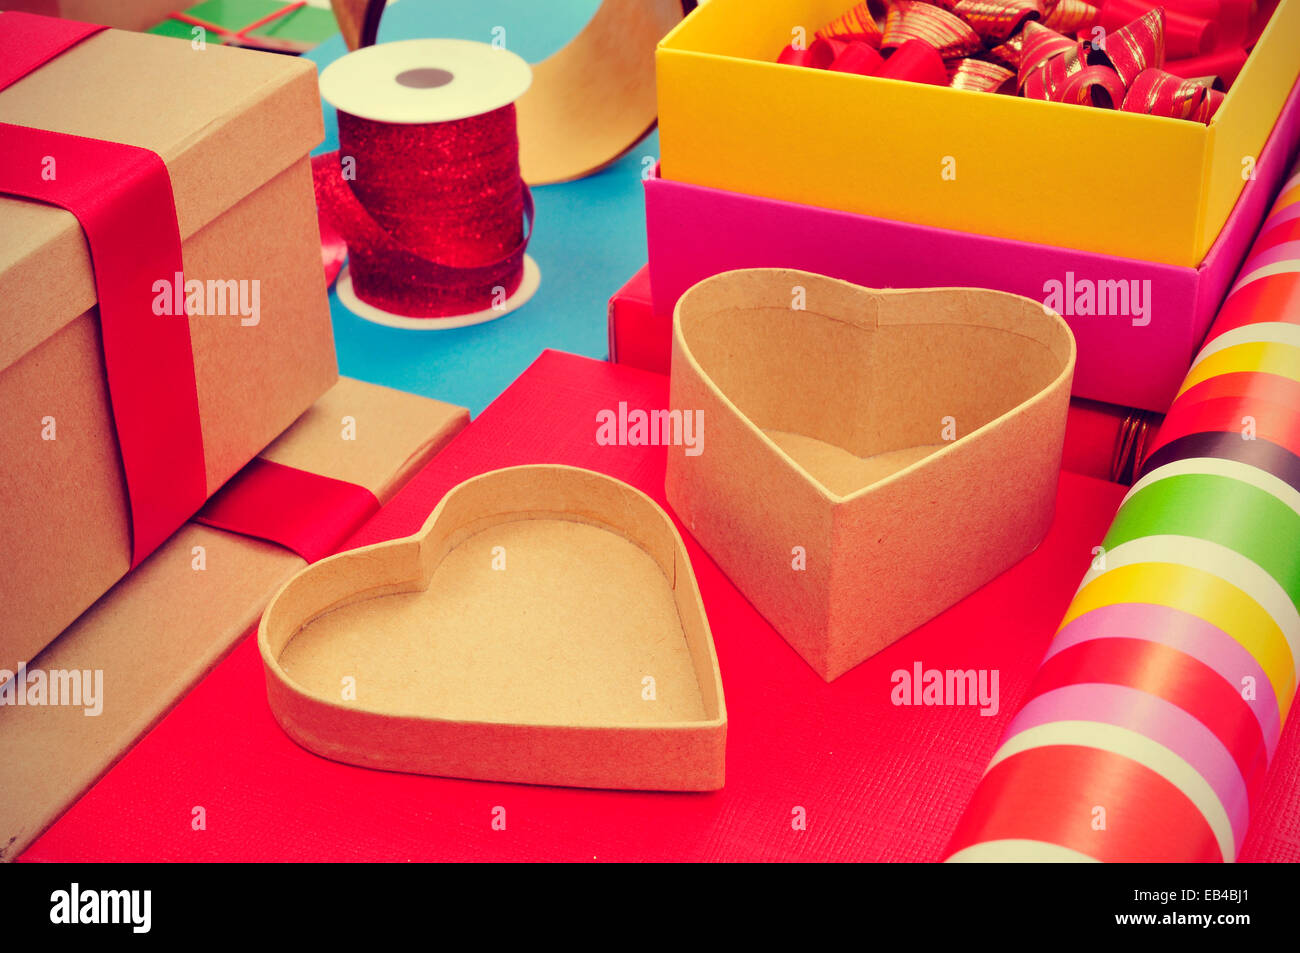 a pile of different boxes, wrapping paper, ribbon and ribbon bows of different colors to prepare gifts - Stock Image